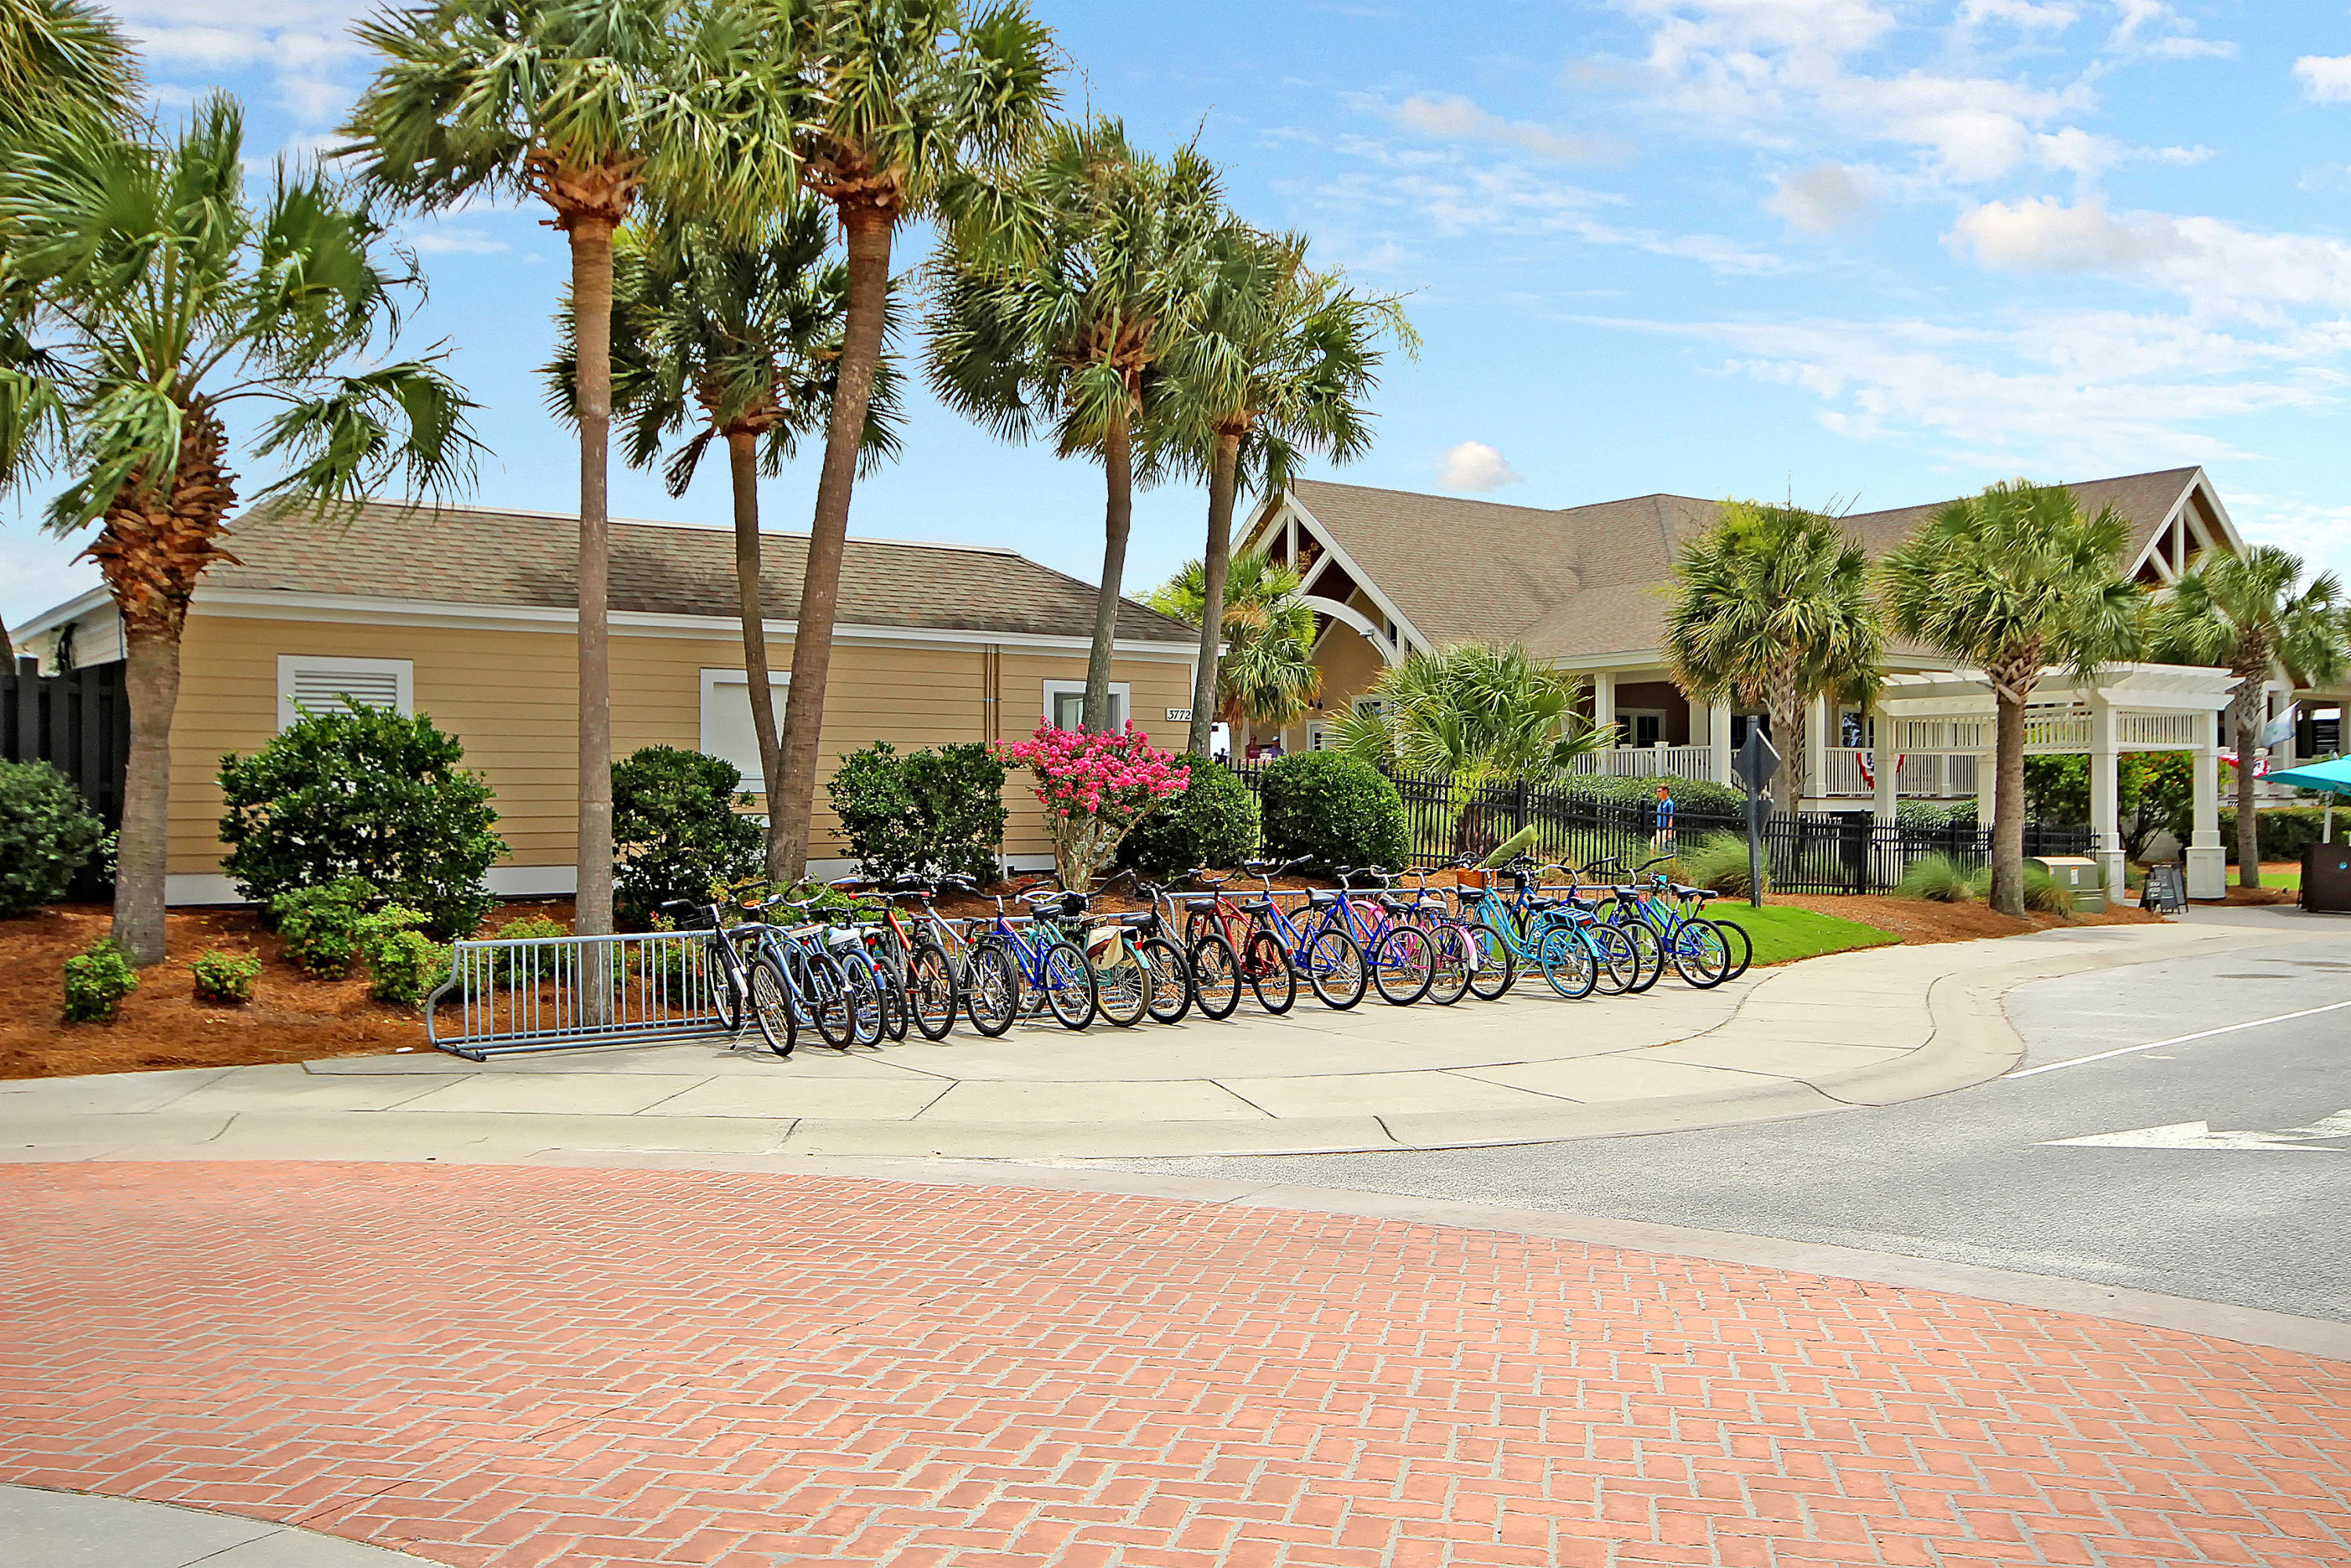 Atrium Villas Homes For Sale - 2912 Atrium Villa, Seabrook Island, SC - 32